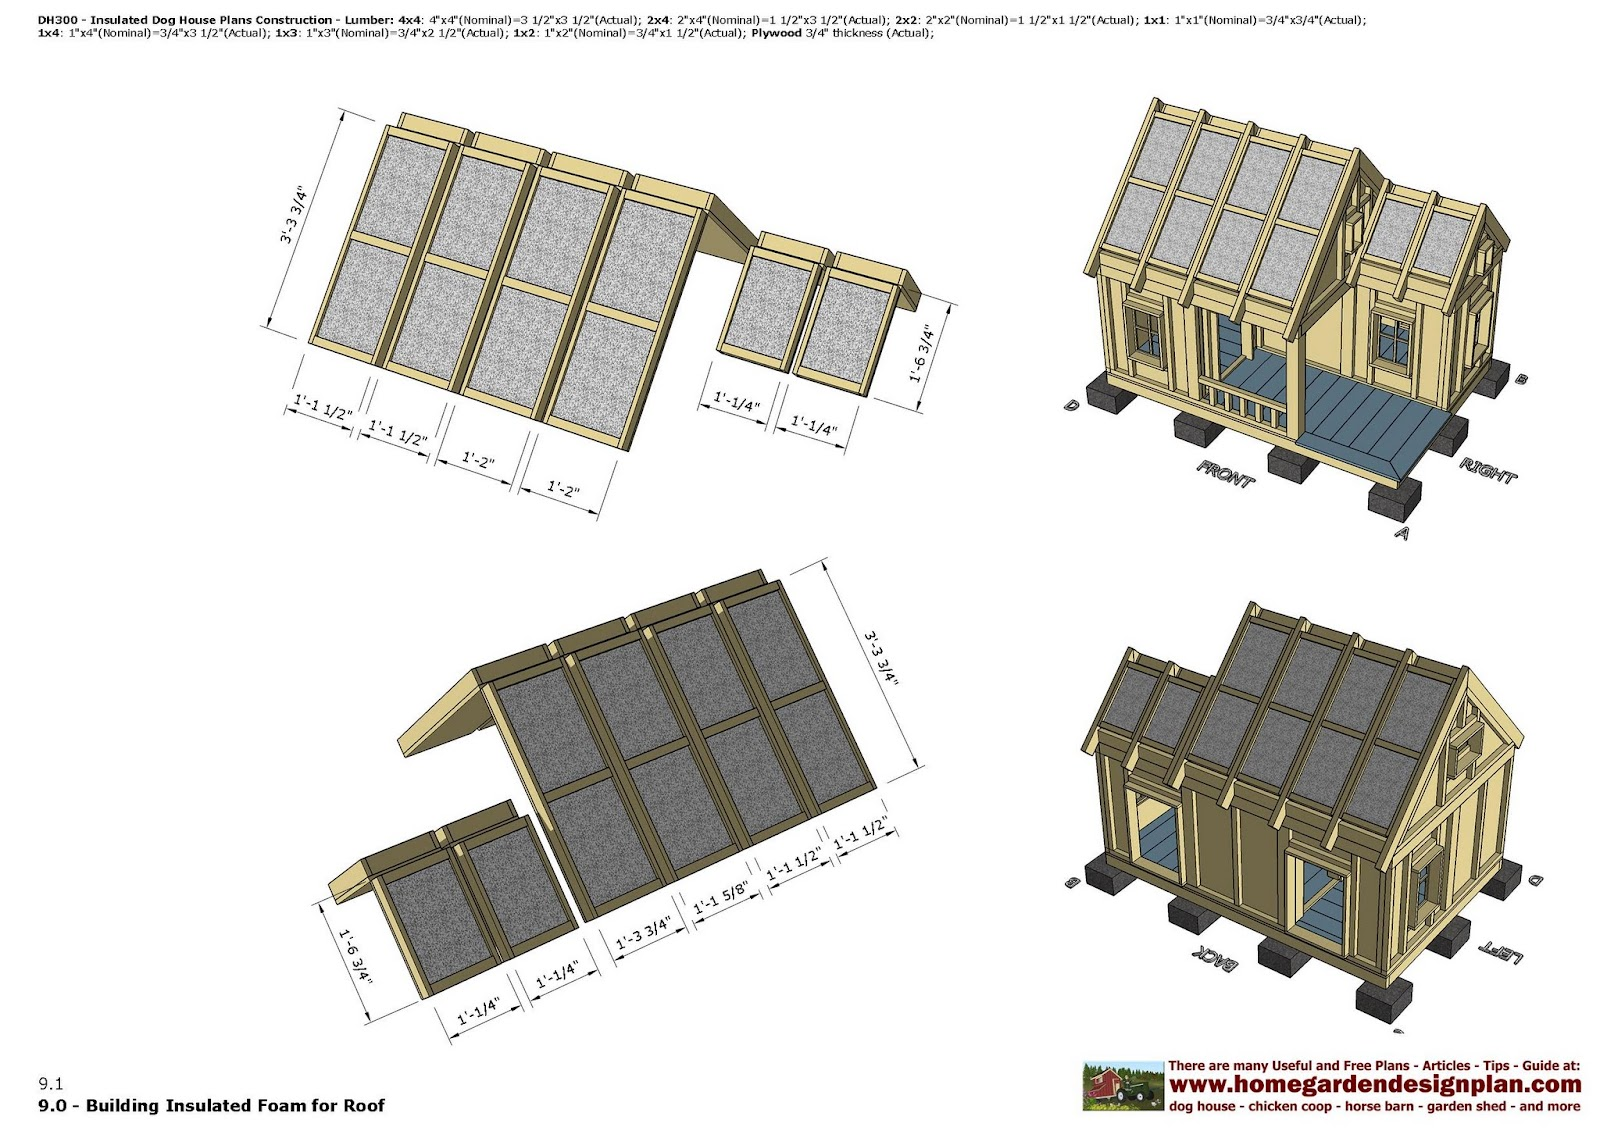 home garden plans: dh300 - insulated dog house plans construction